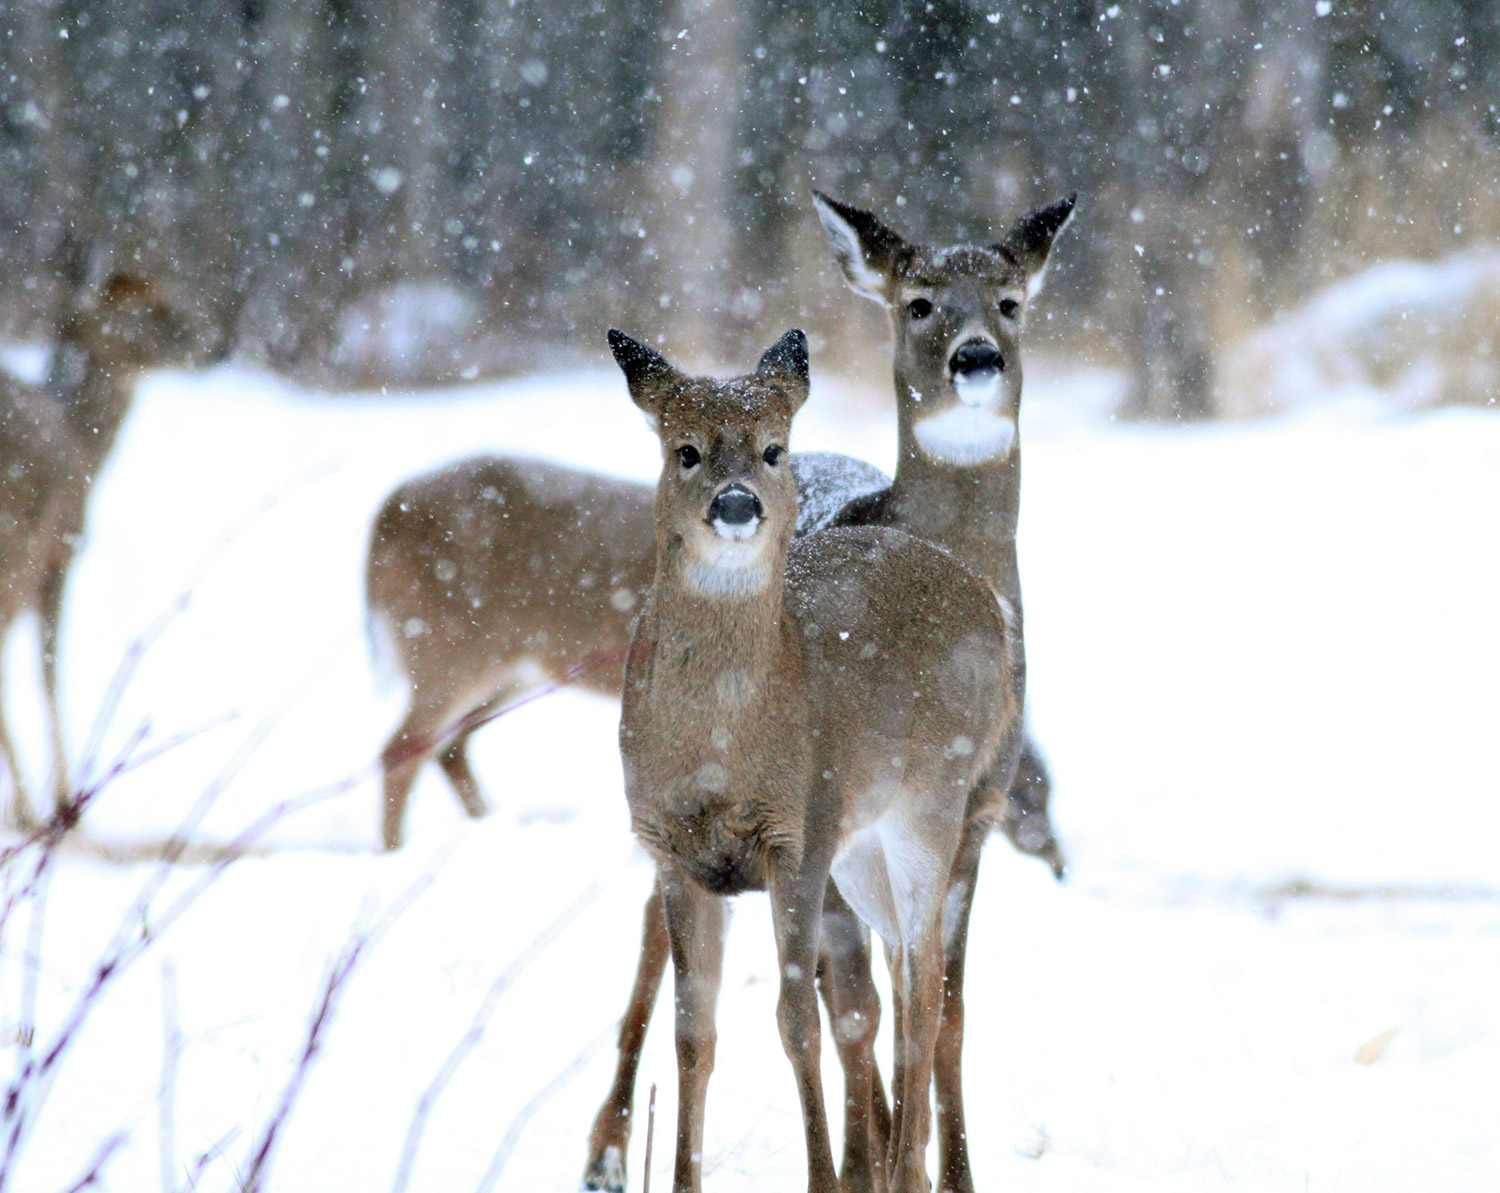 Winter wonderland delight: These doe-eyed deer gathered in the Rangeley snow where Jim Knox was hunting with just a camera.